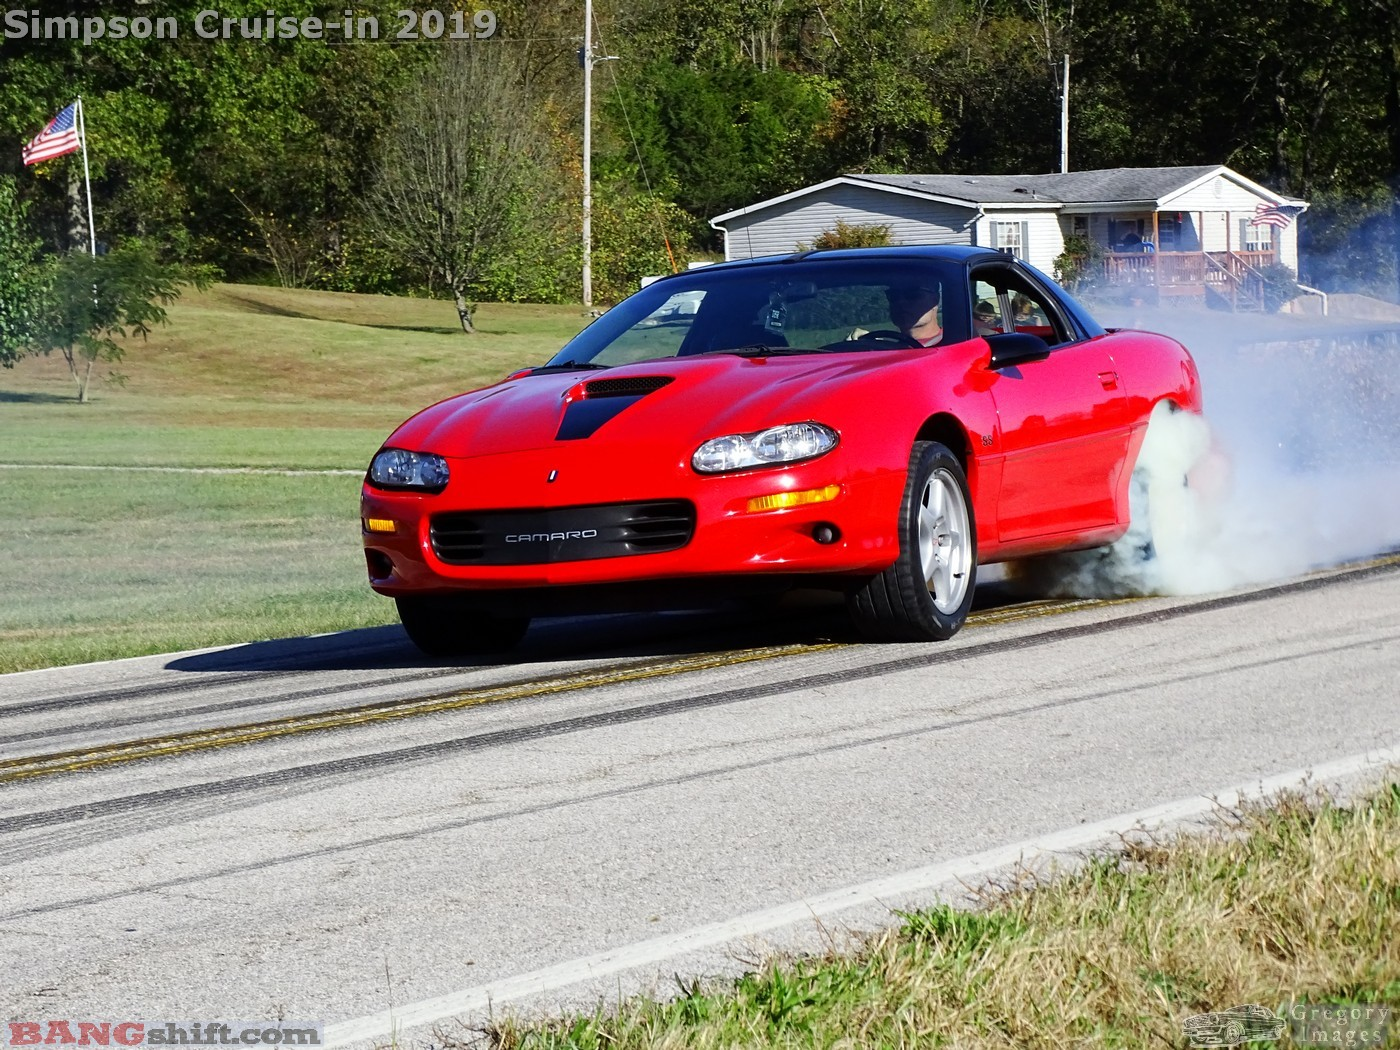 Simpson Family Cruise Photo Coverage: Cool Cars, Big Burnouts, and Fun For The Whole Family